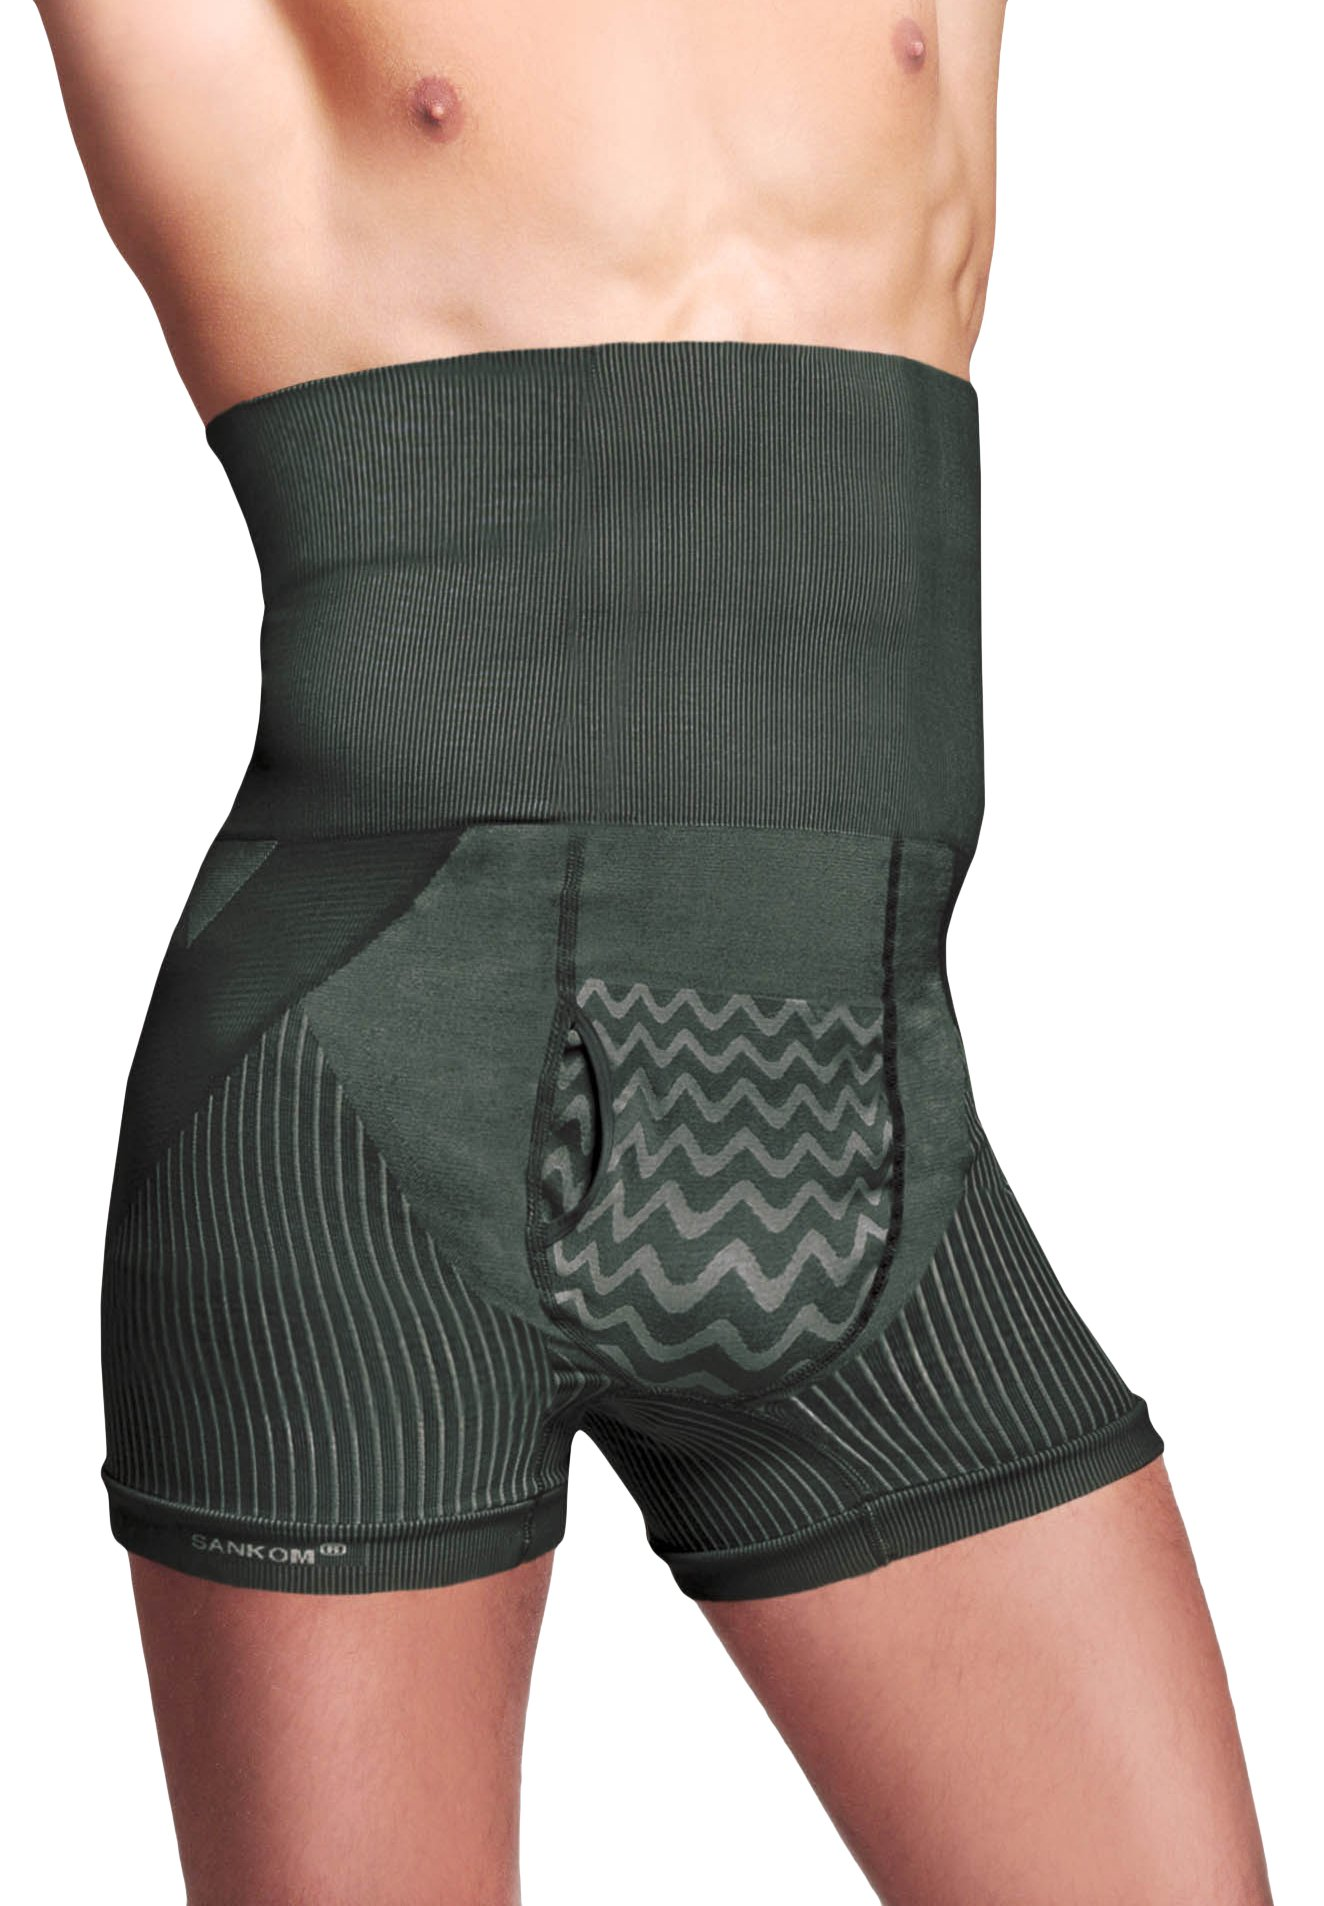 Sankom Men's Posture Correction Shaper Shorts